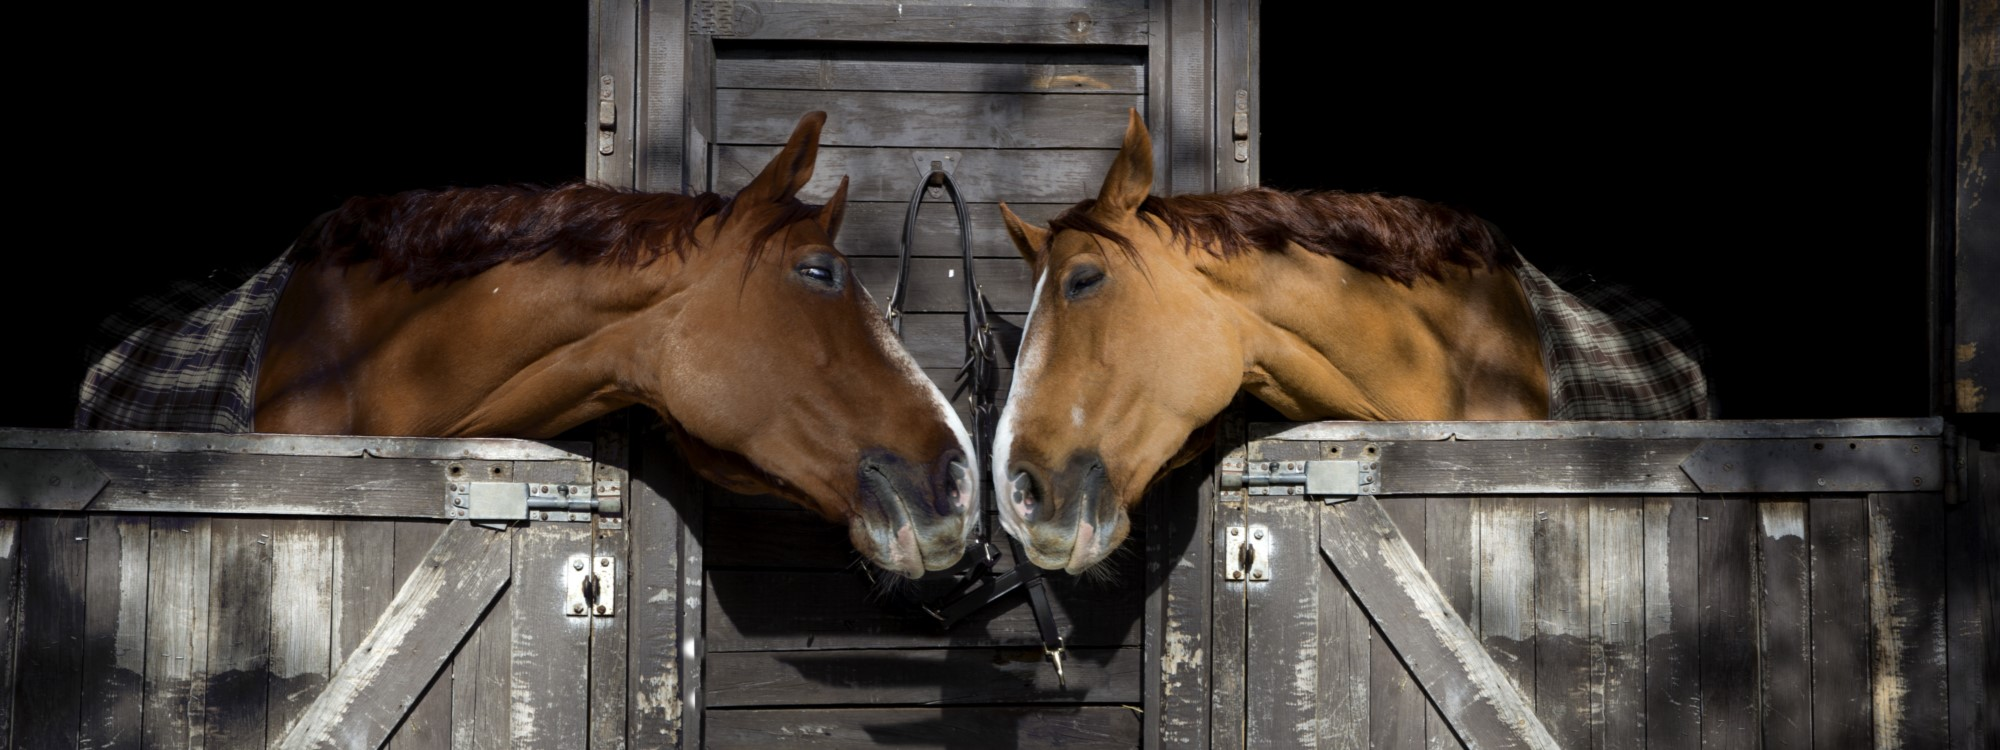 Two horse touch noses